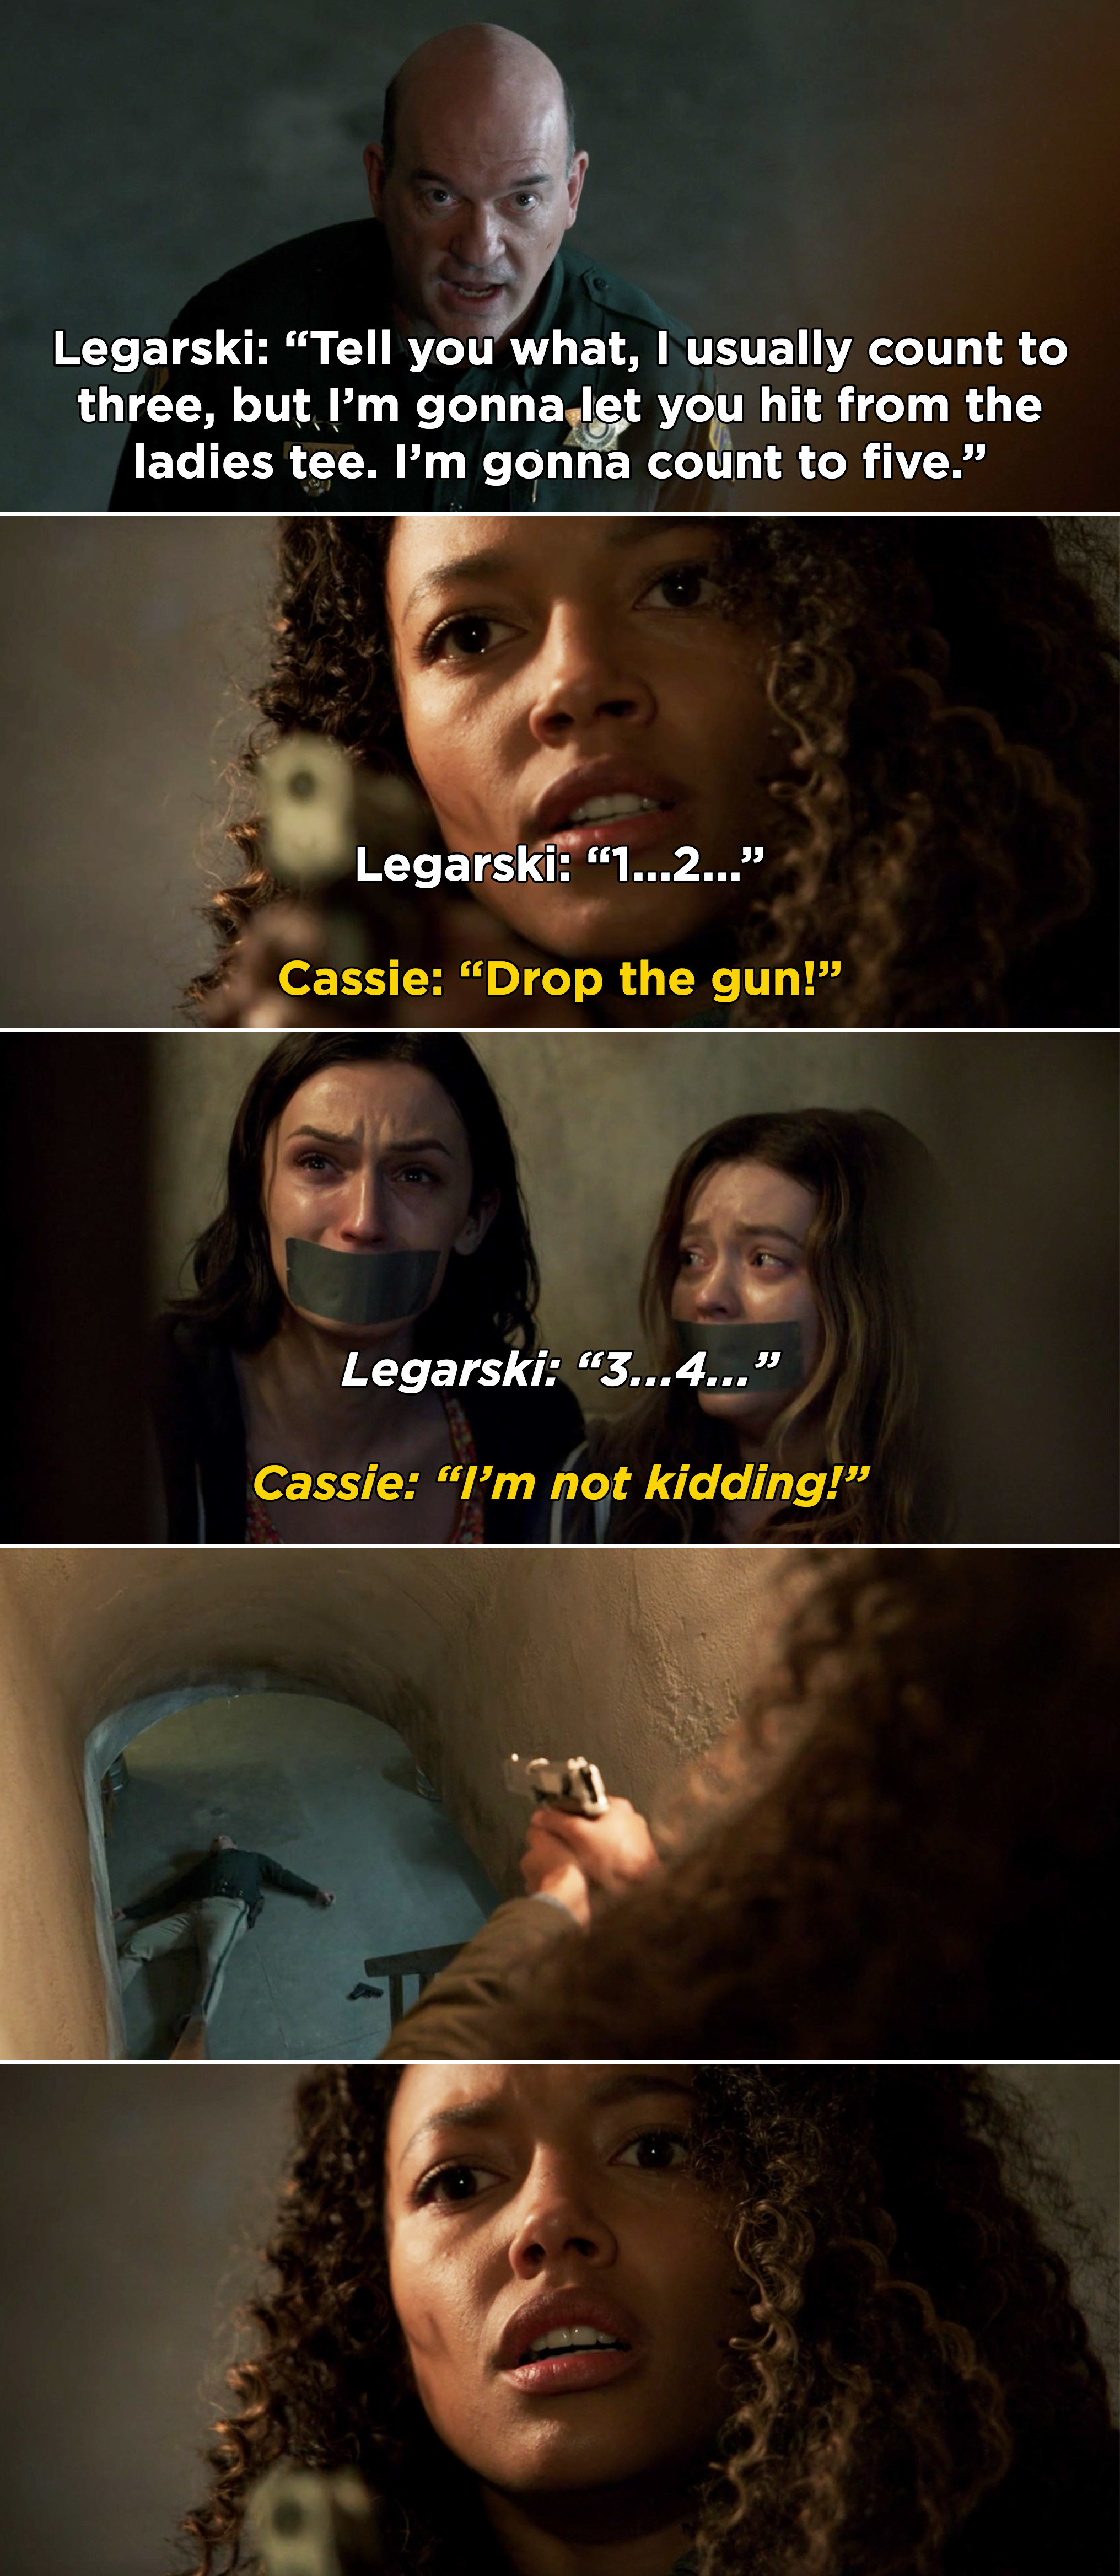 Legarski counting down to five before coming after Cassie, but Cassie shoots him before he gets to five